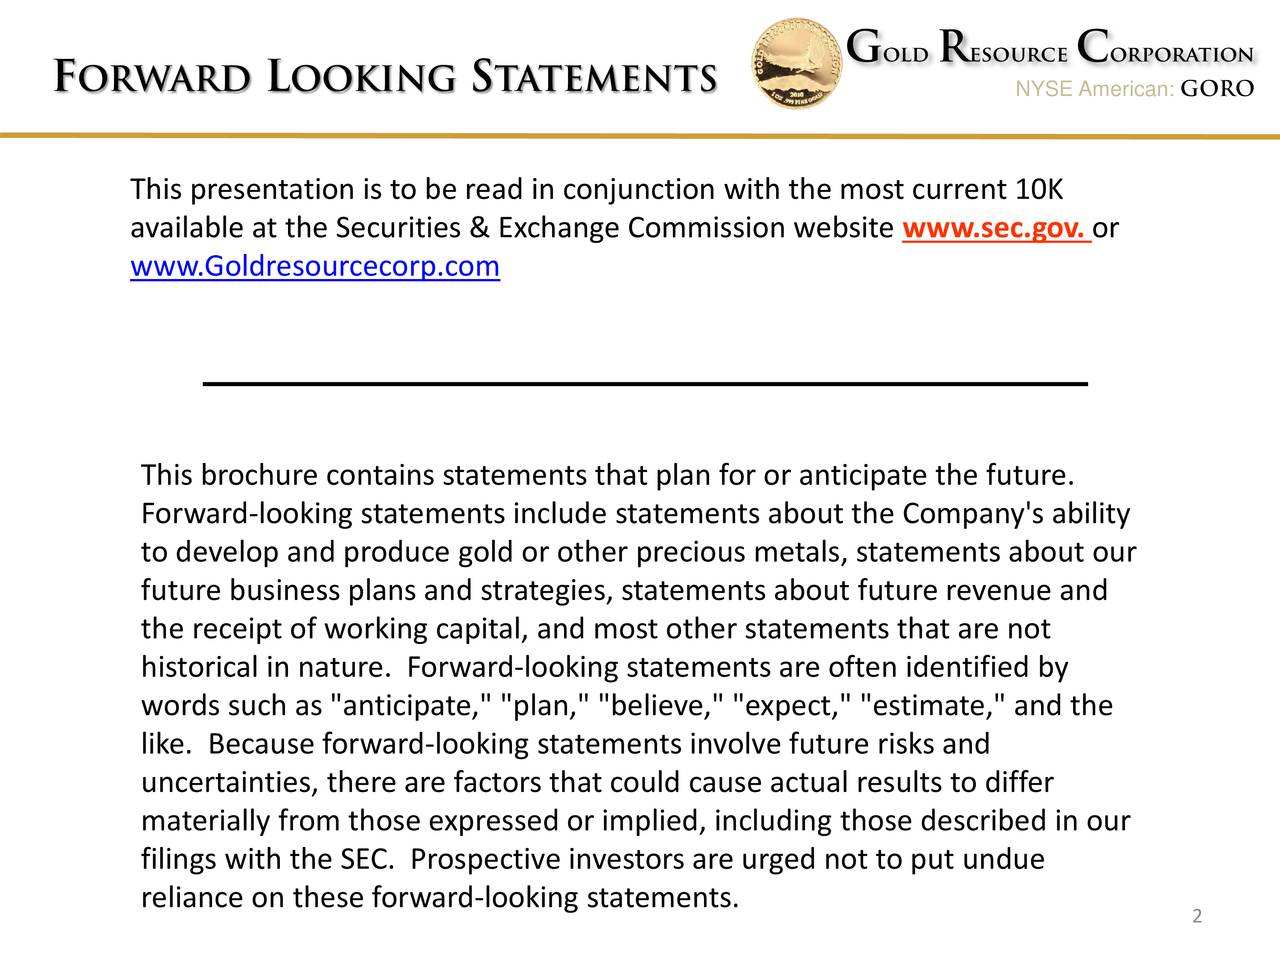 "F ORWARD L OOKING S TATEMENTS NYSE American: GORO This presentation is to be read in conjunction with the most current 10K available at the Securities & Exchange Commission website www.sec.gov. www.Goldresourcecorp.com This brochure contains statements that plan for or anticipate the future. Forward-looking statements include statements about the Company's ability to develop and produce gold or other precious metals, statements about our future business plans and strategies, statements about future revenue and the receipt of working capital, and most other statements that are not historical in nature. Forward-looking statements are often identified by words such as ""anticipate,"" ""plan,"" ""believe,"" ""expect,"" ""estimate,"" and the like. Because forward-looking statements involve future risks and uncertainties, there are factors that could cause actual results to differ materially from those expressed or implied, including those described in our filings with the SEC. Prospective investors are urged not to put undue reliance on these forward-looking statements. 2"